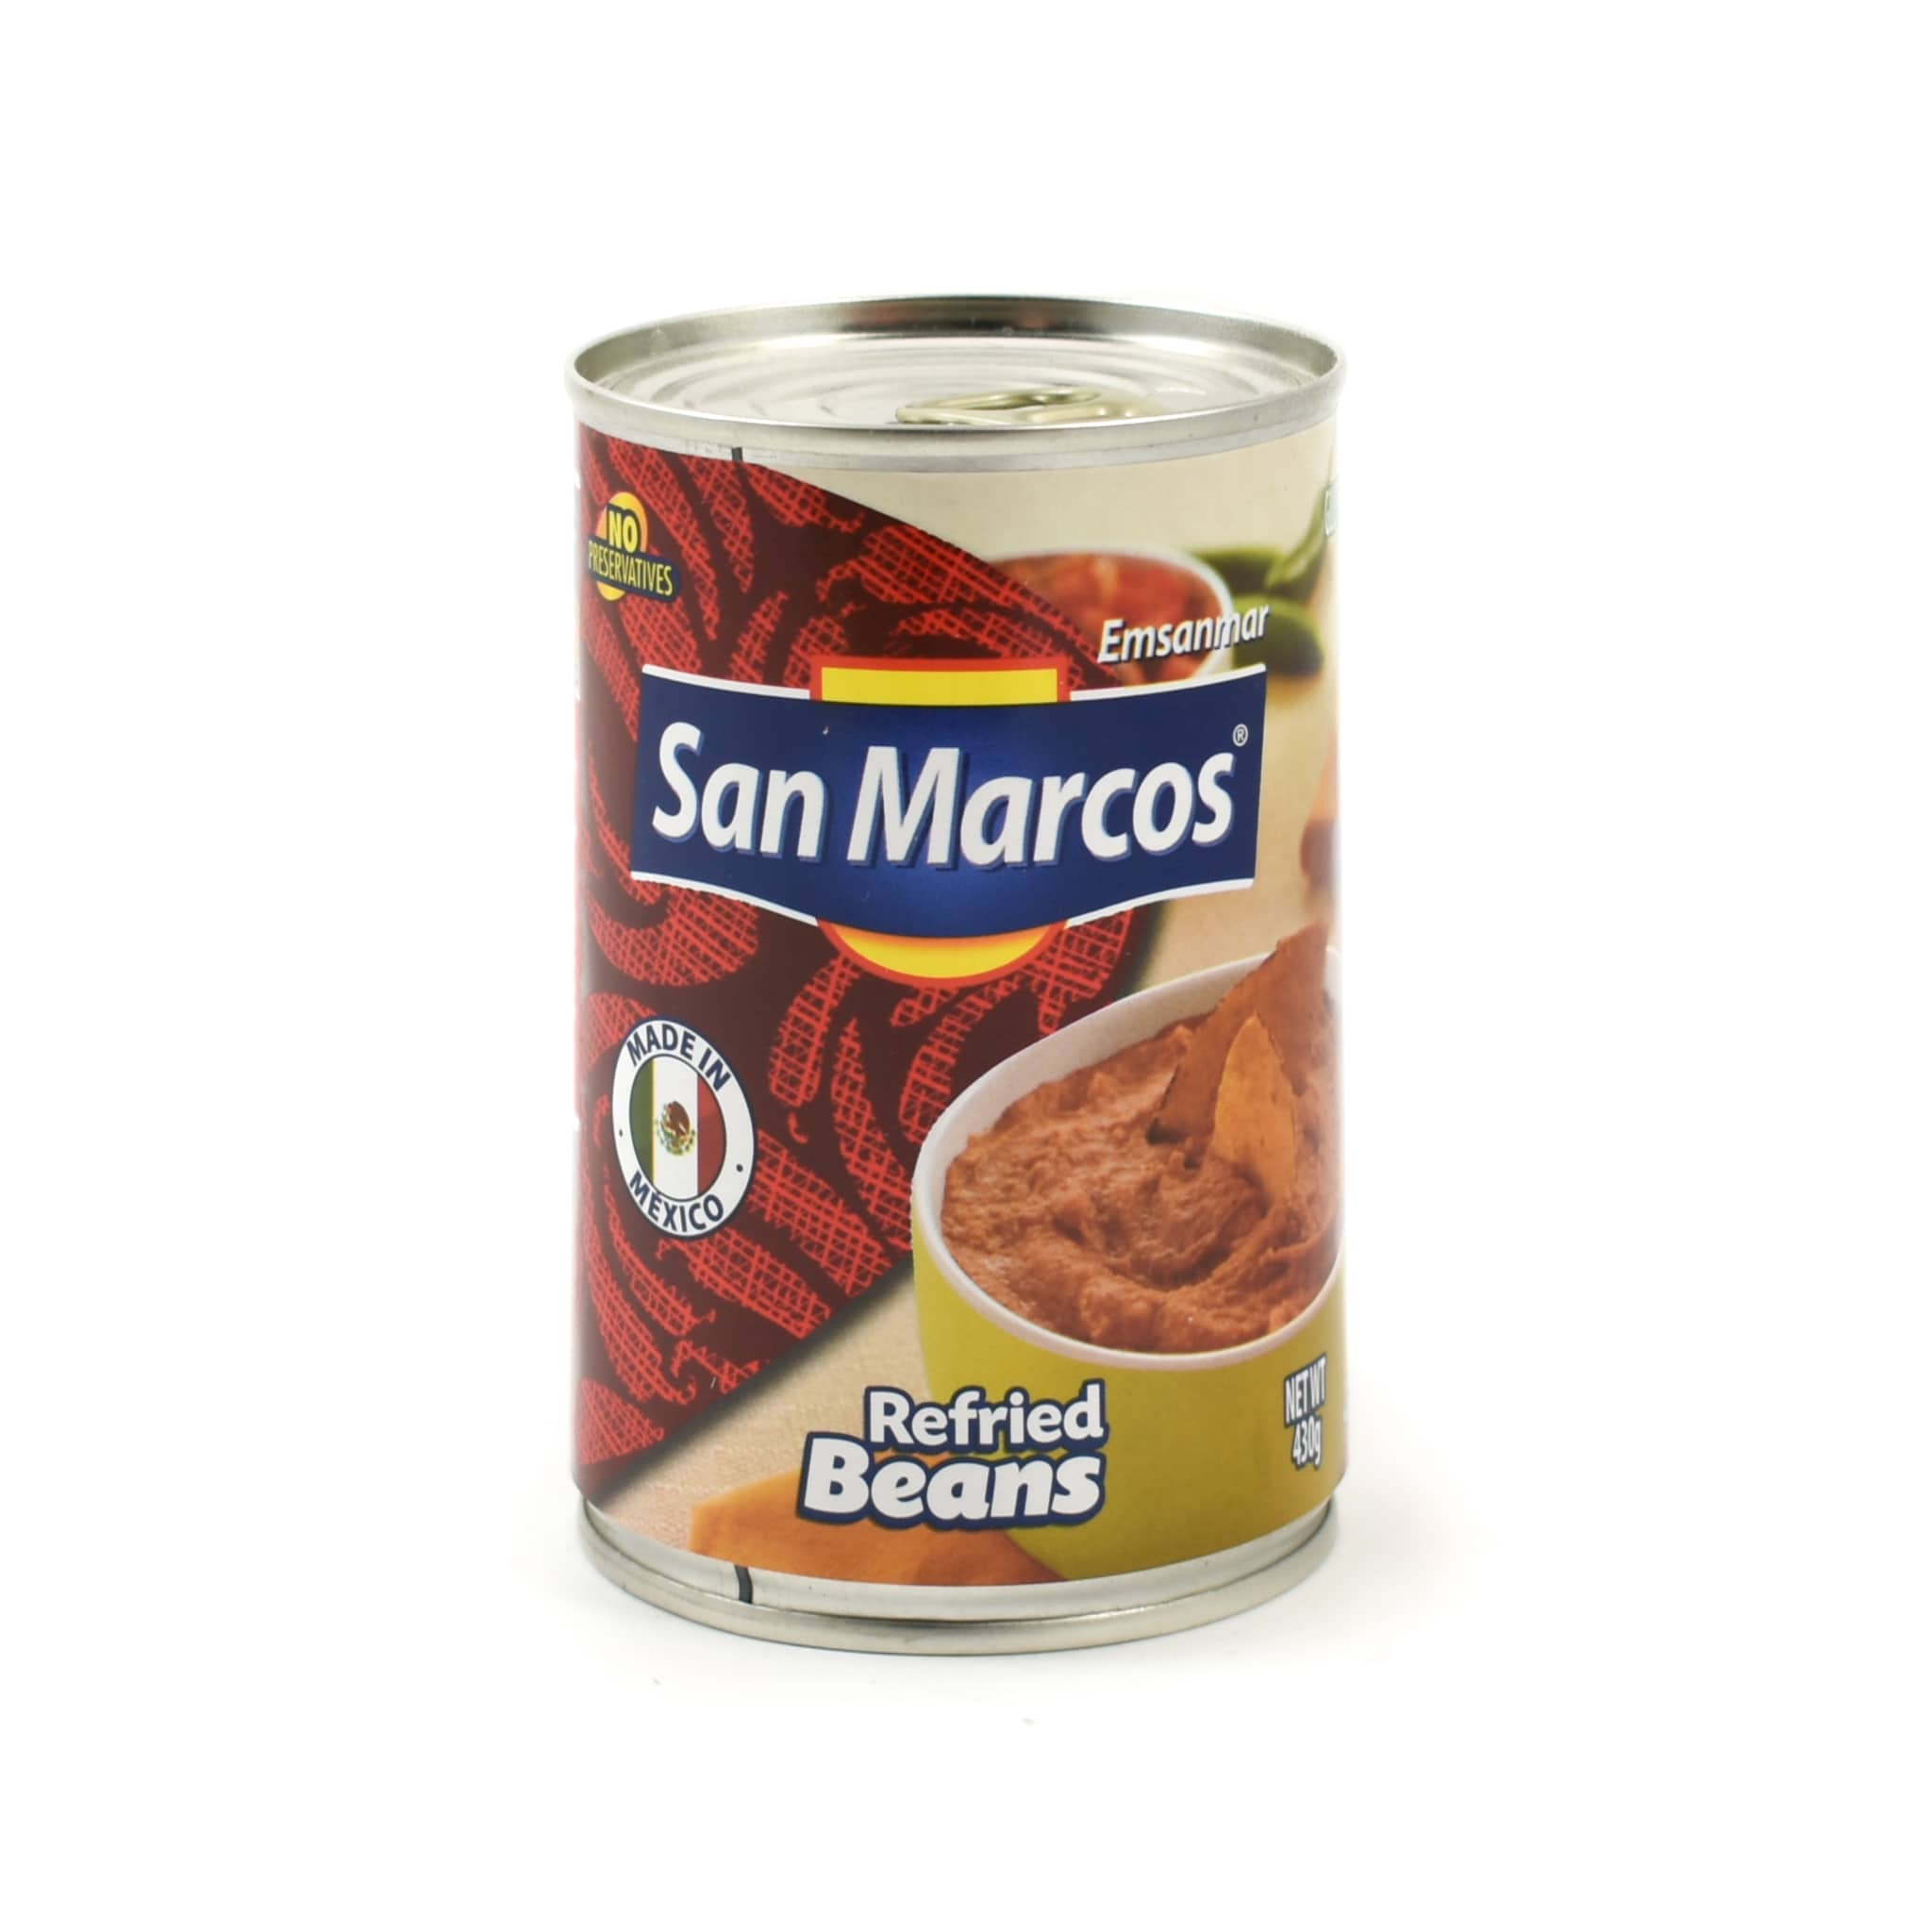 San Marcos Frijoles Refritos Bayos Refried Beans 430g Mexican Food and Cooking